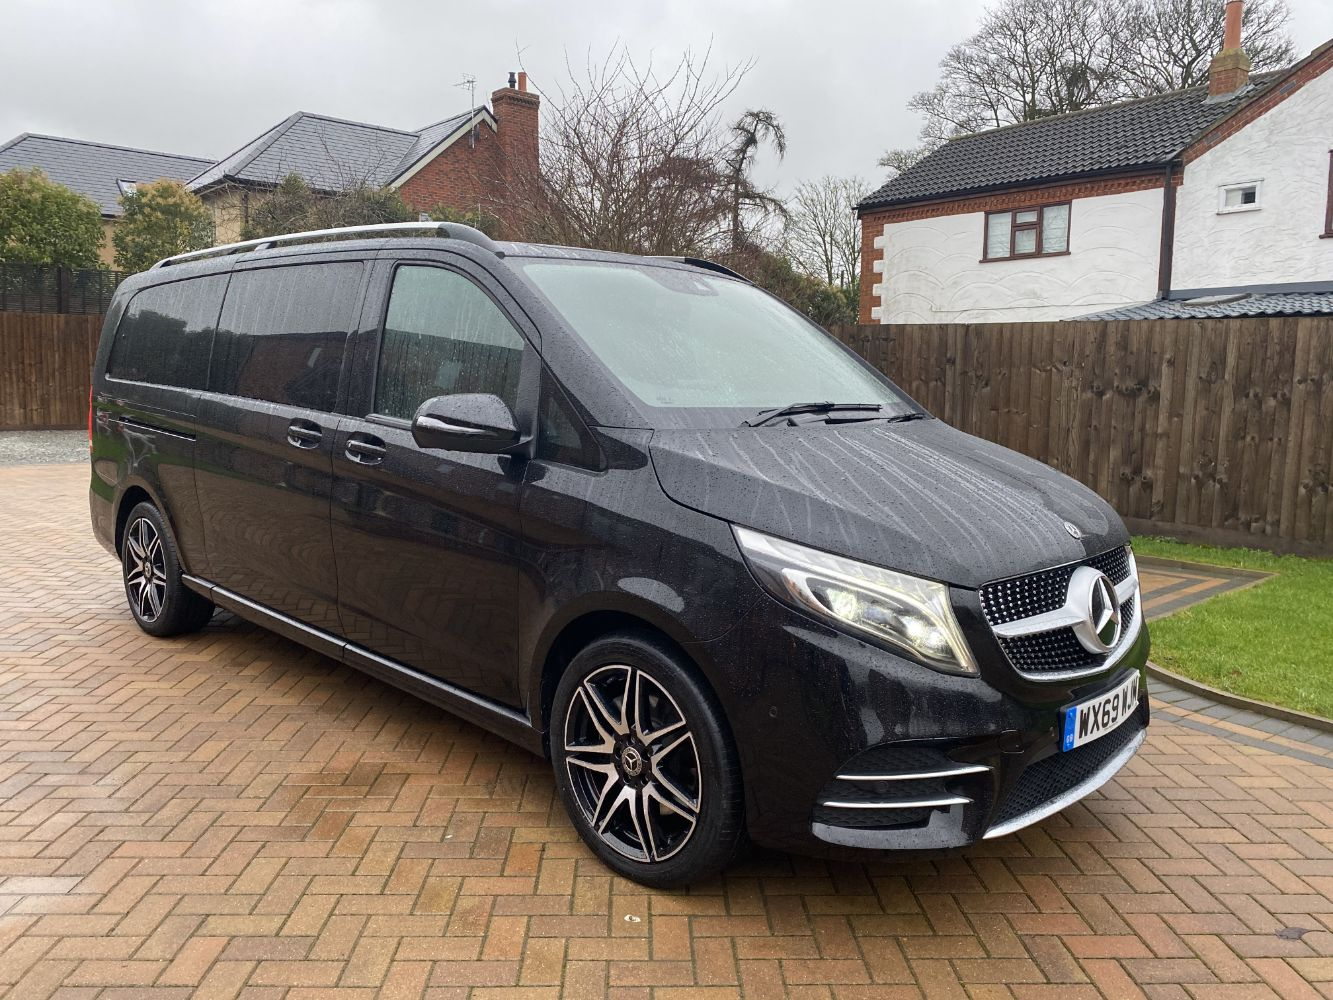 ** CHRISTMAS AND NEW YEAR ** Auction Featuring: Cars, Commercials & 4x4's !!!  1X 2020 V220d AMG LWB - E220d 2019 - (ALSO MANY ROLEX WATCHES)